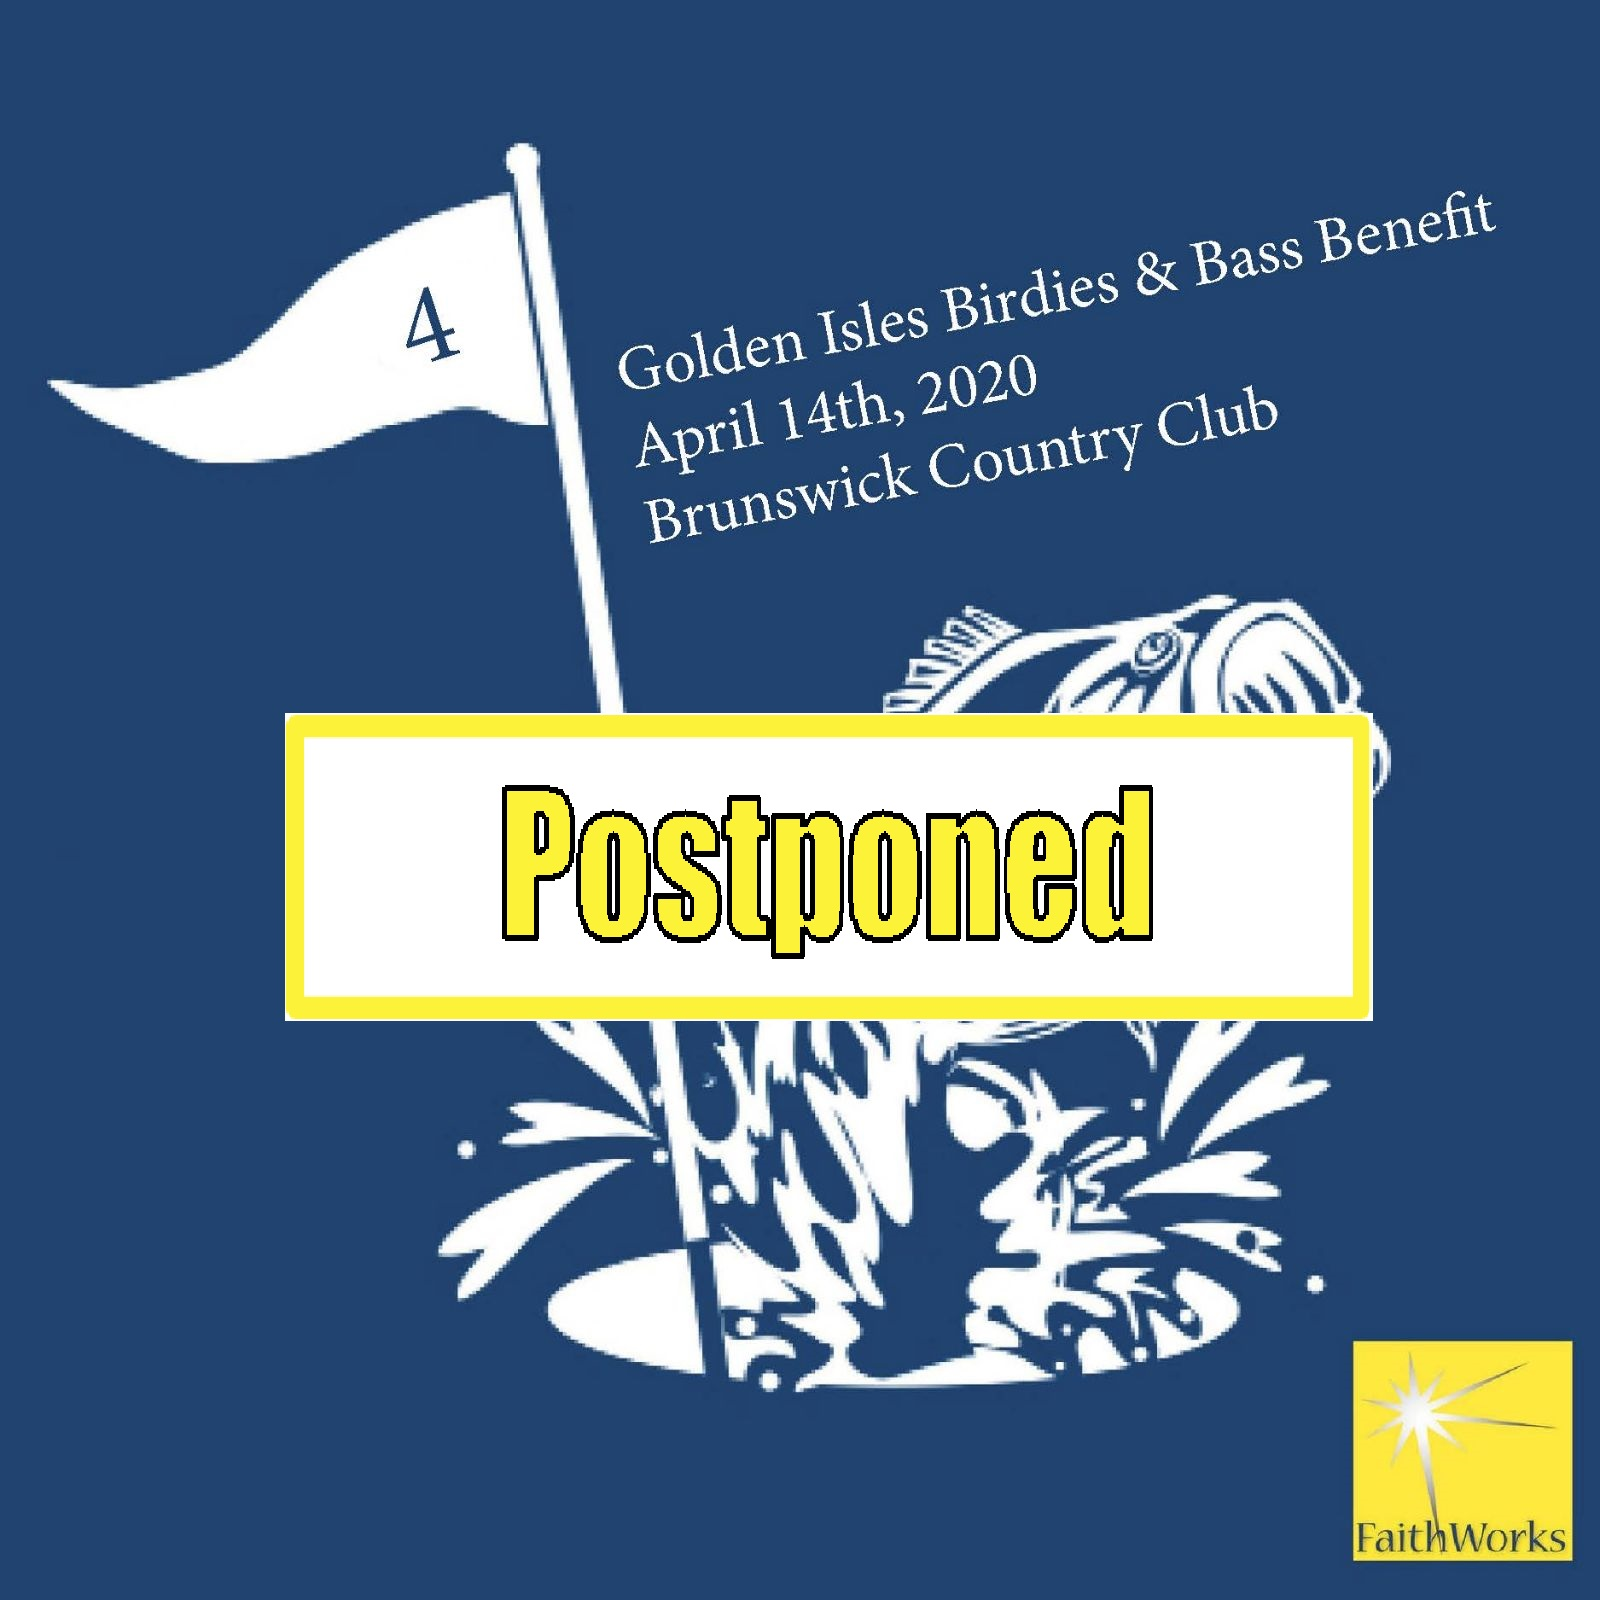 4th Annual 2020 Birdies & Bass - Faithworks Postponed 2